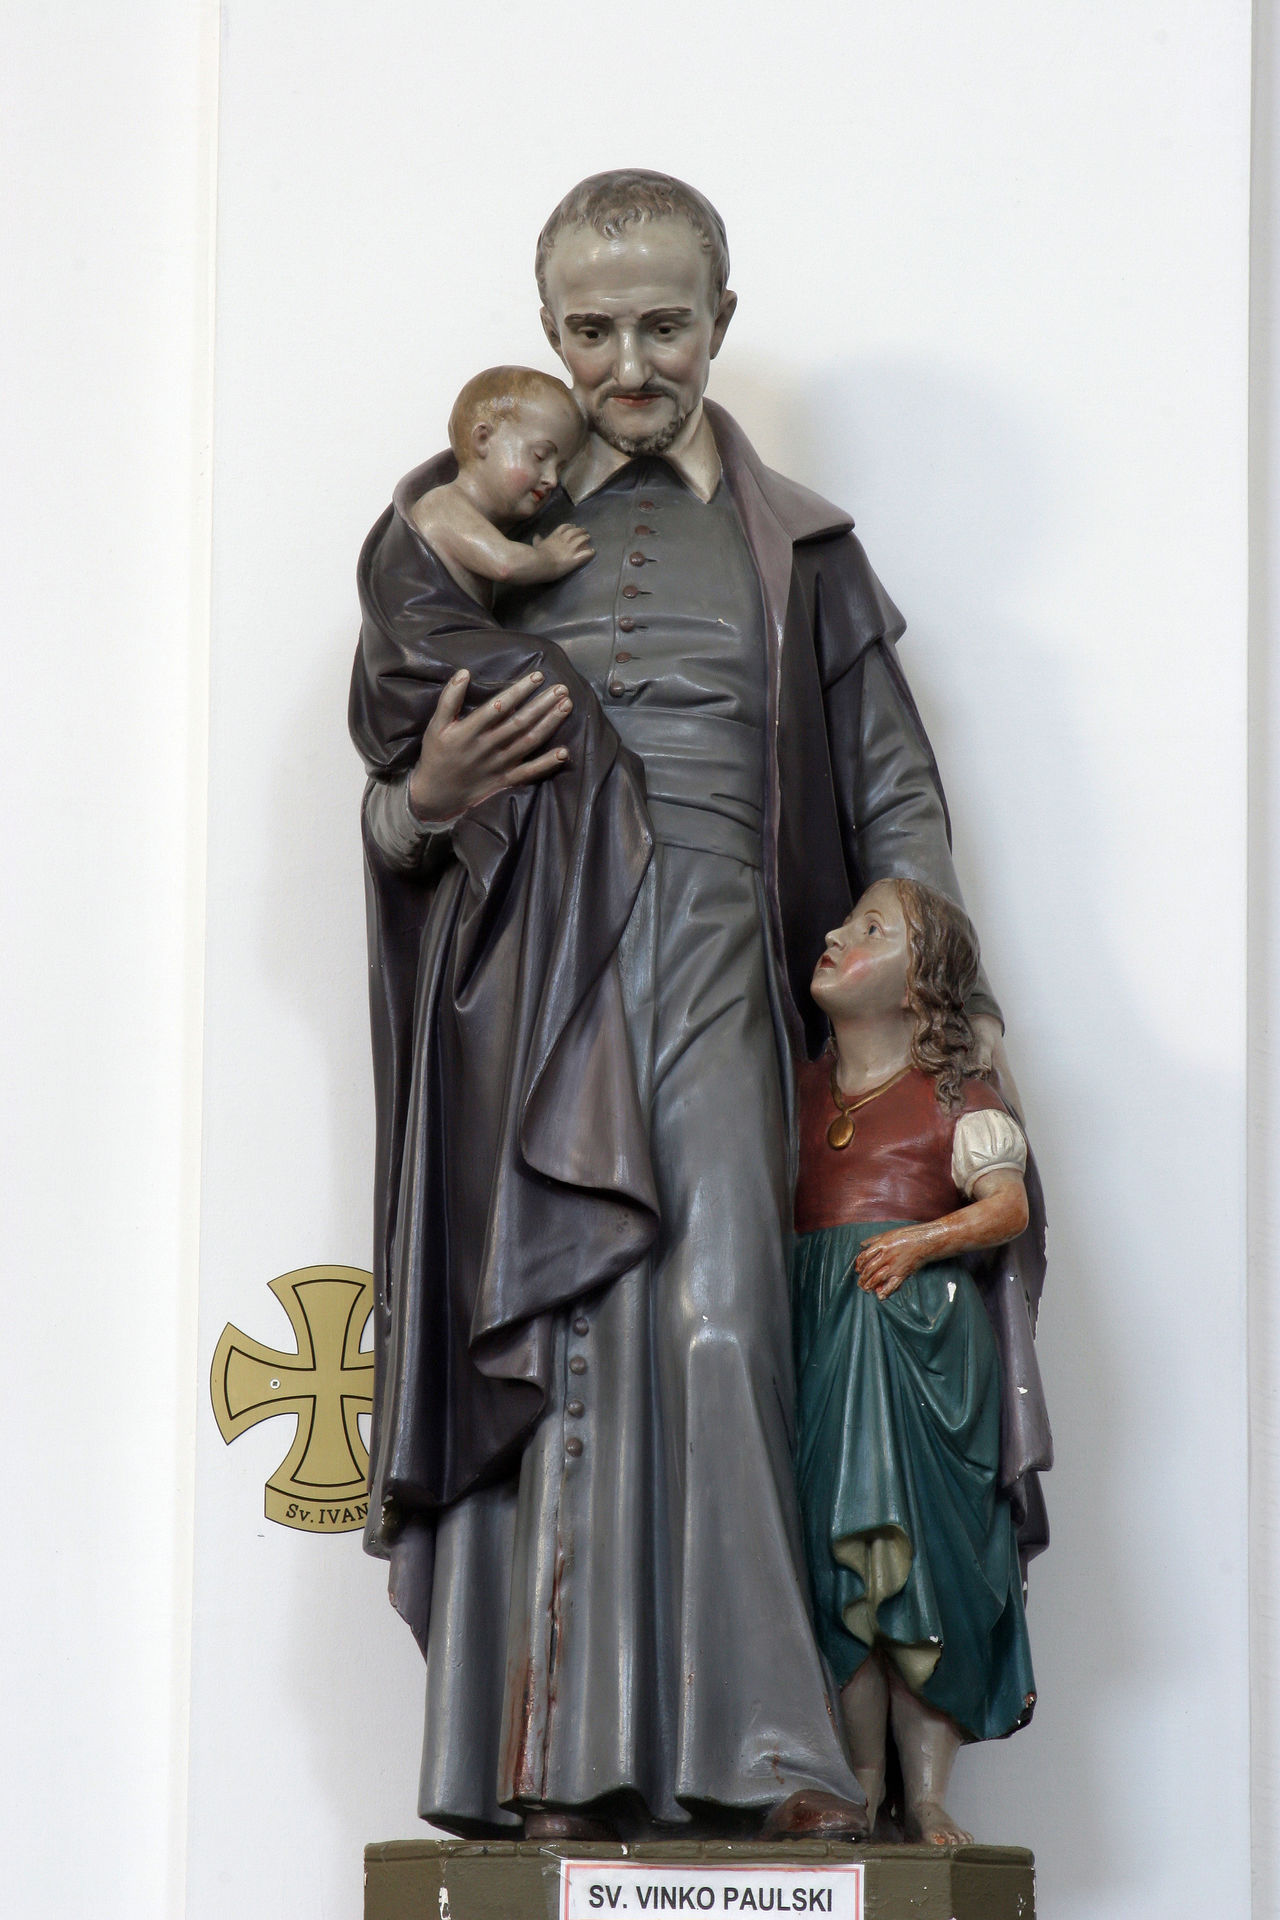 Saint Vincent de Paul Abbey Altar Art Art And Craft Belief Christianity Church Convent Croatia Faith Historic Holy Old Patron Prayer Religion Sacred Saint Sculpture Spiritual Statue Vincent De Paul Worship